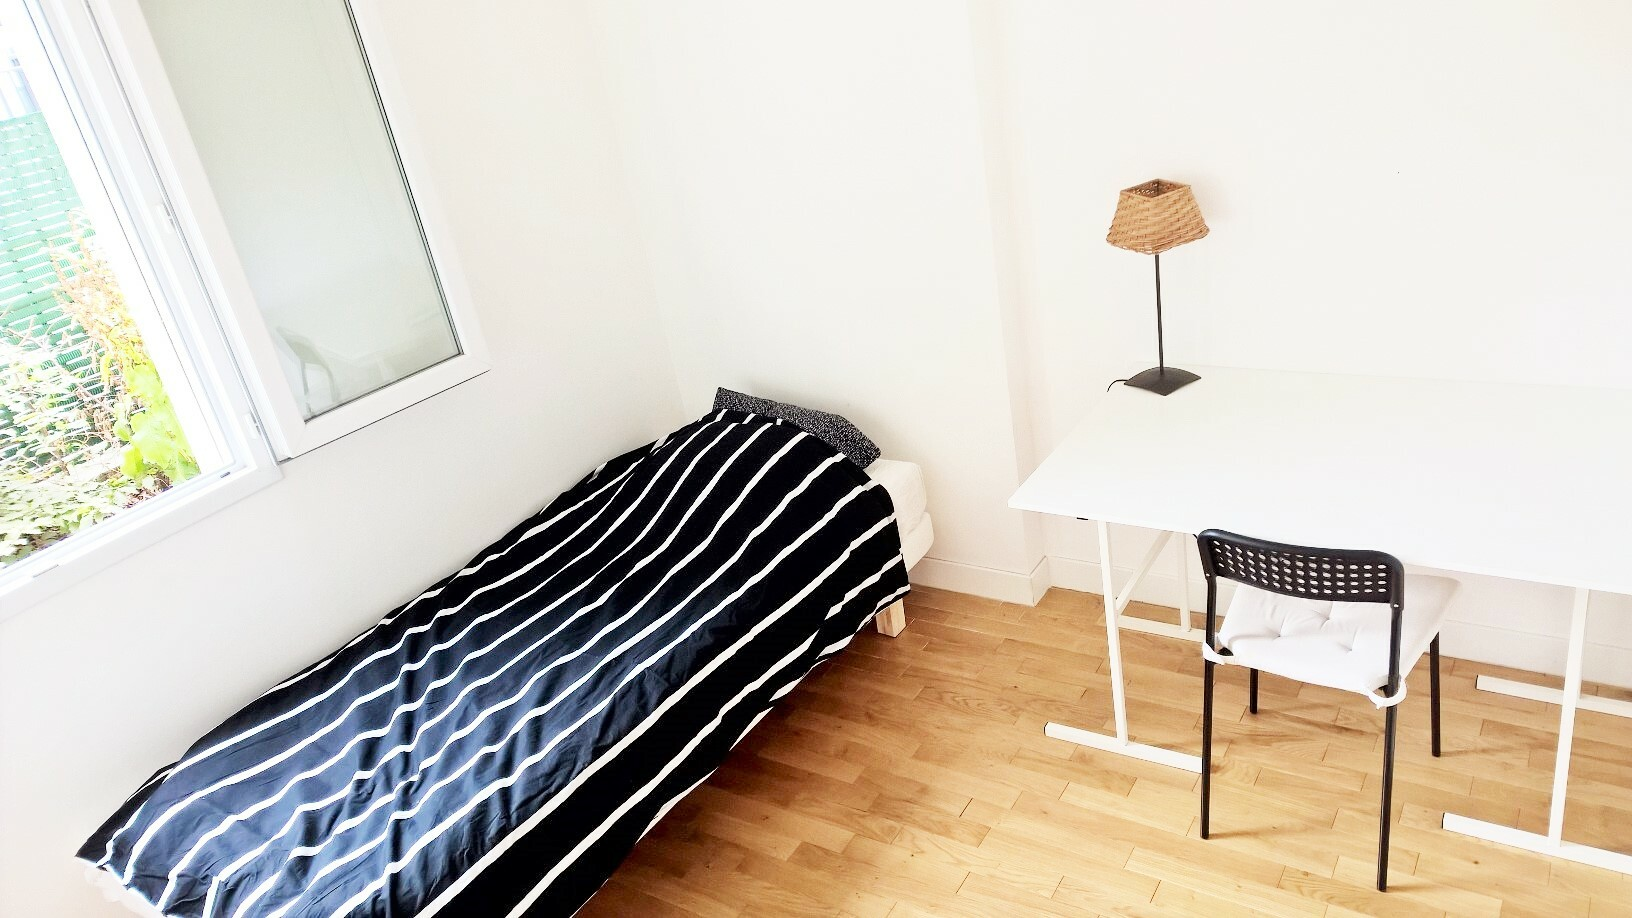 Furnished Room For Rent With One Single Bed